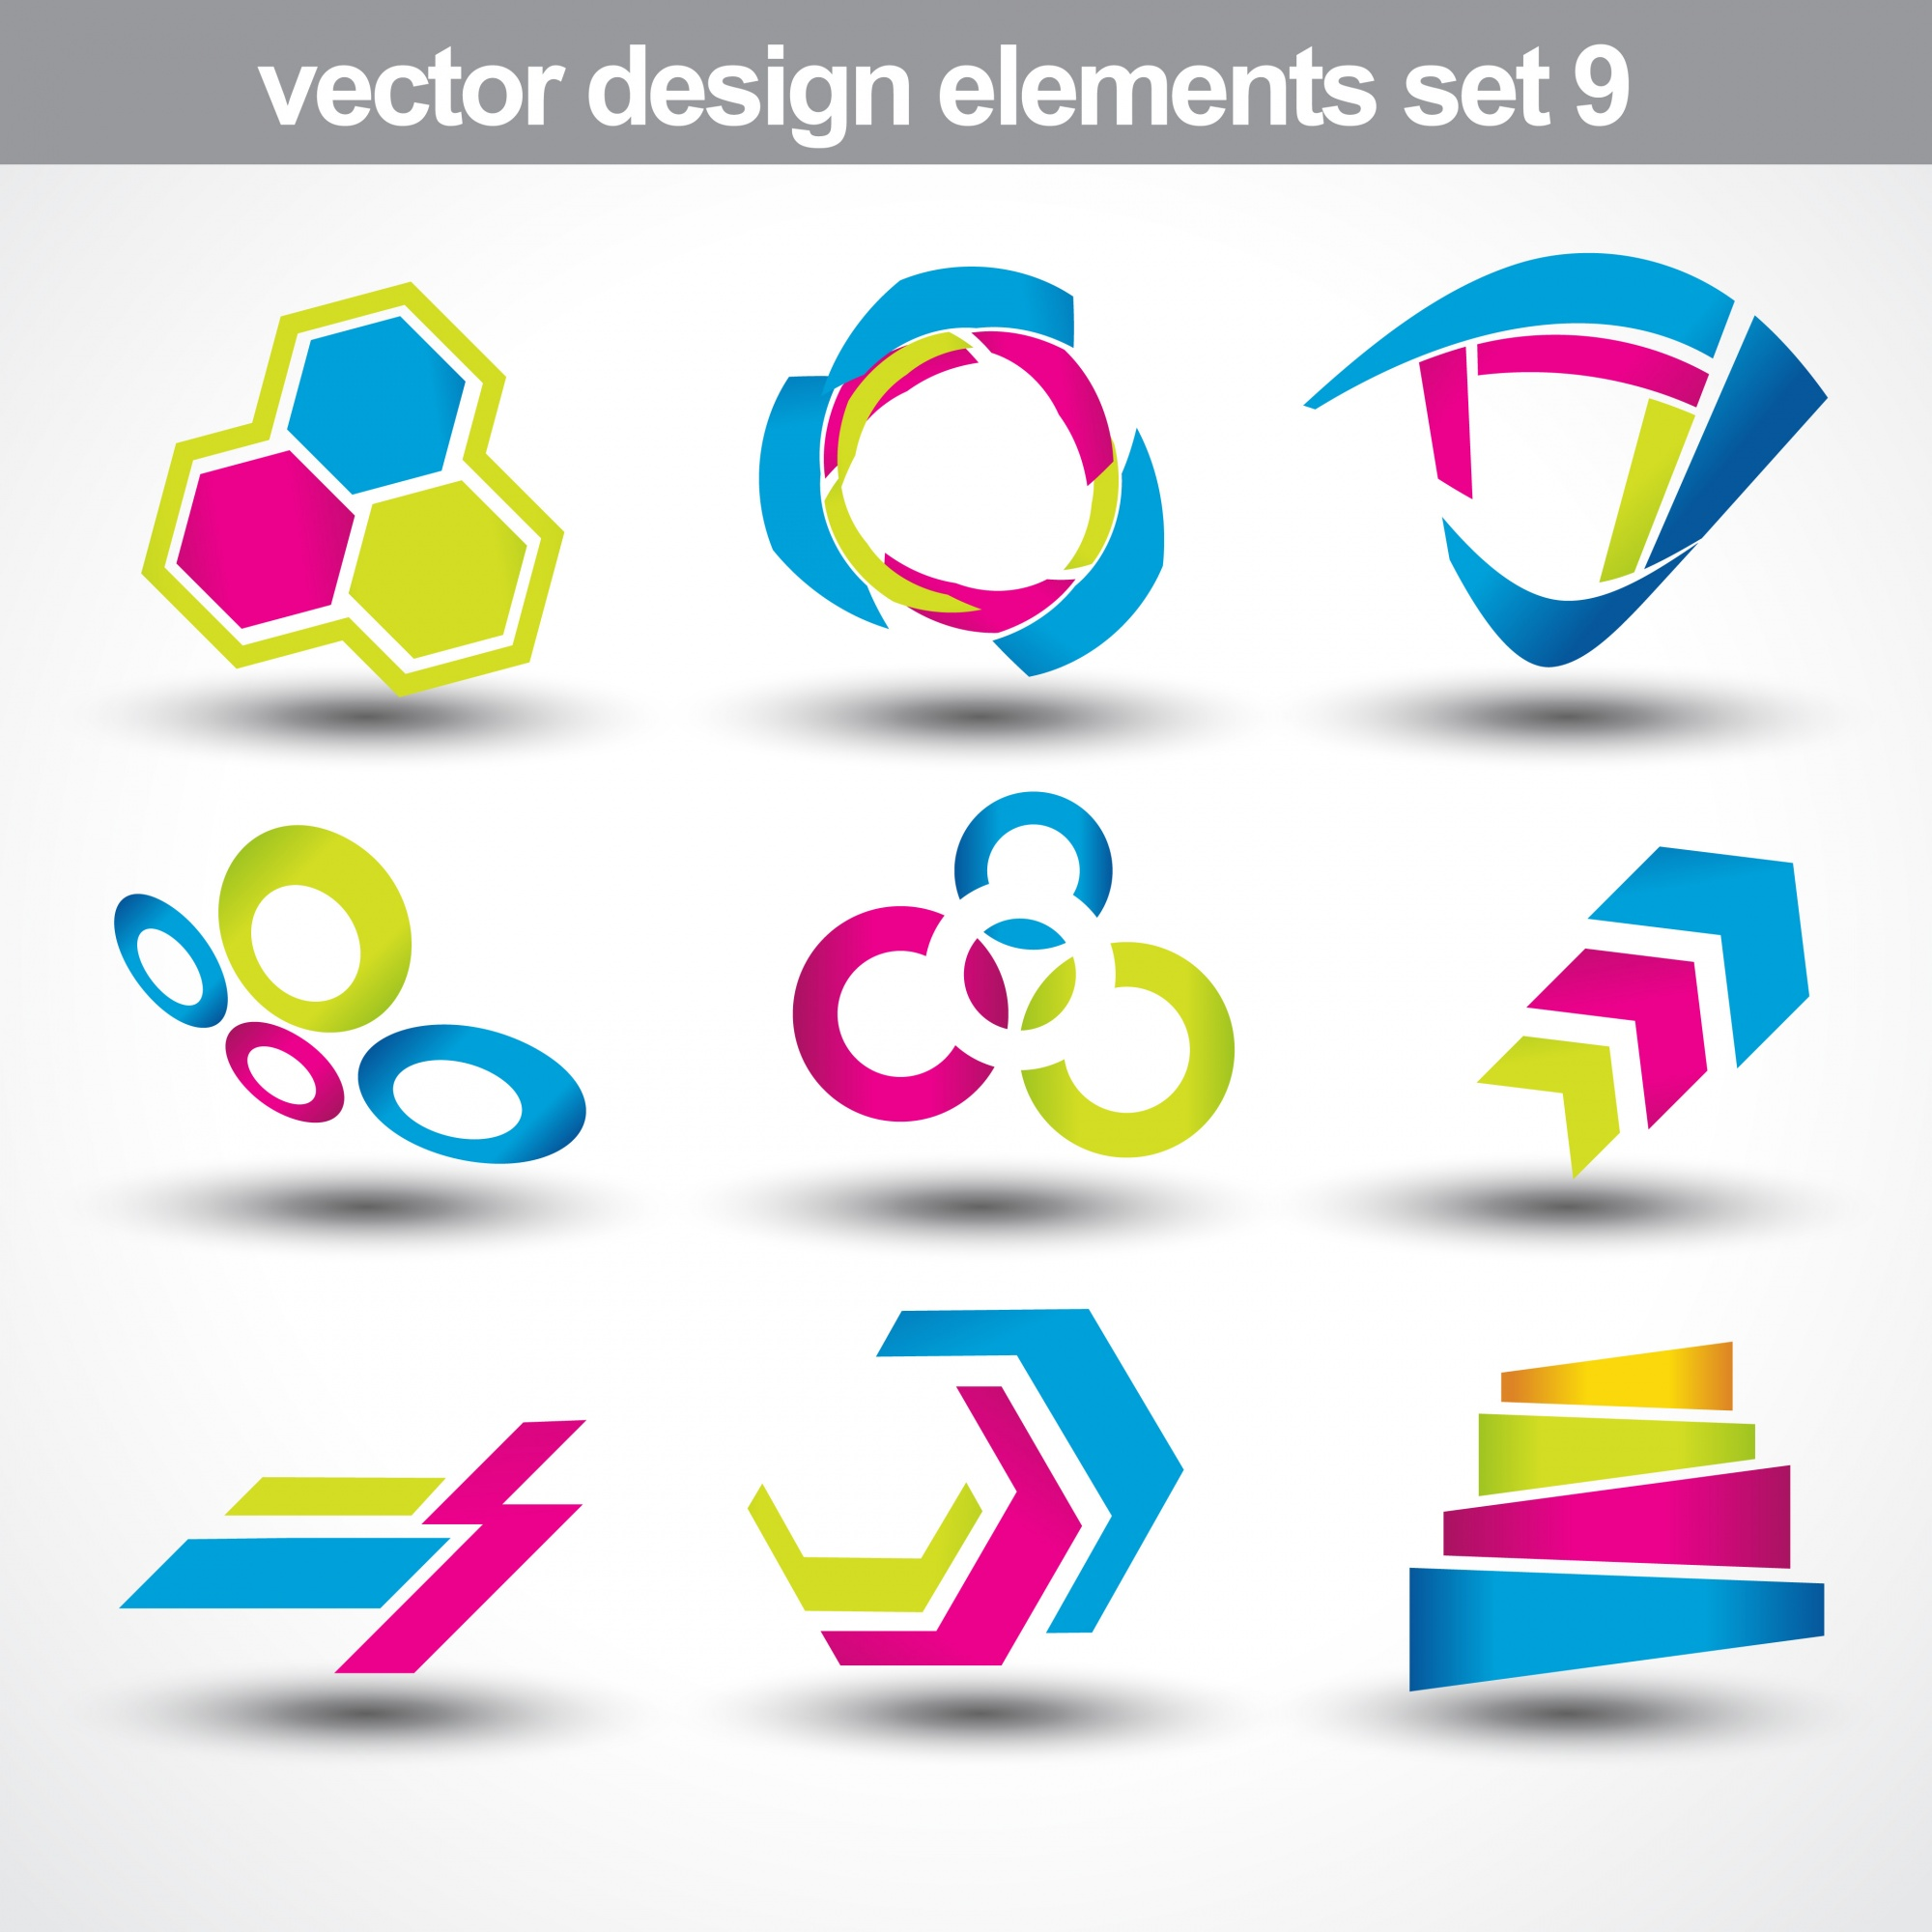 Design elements set 9